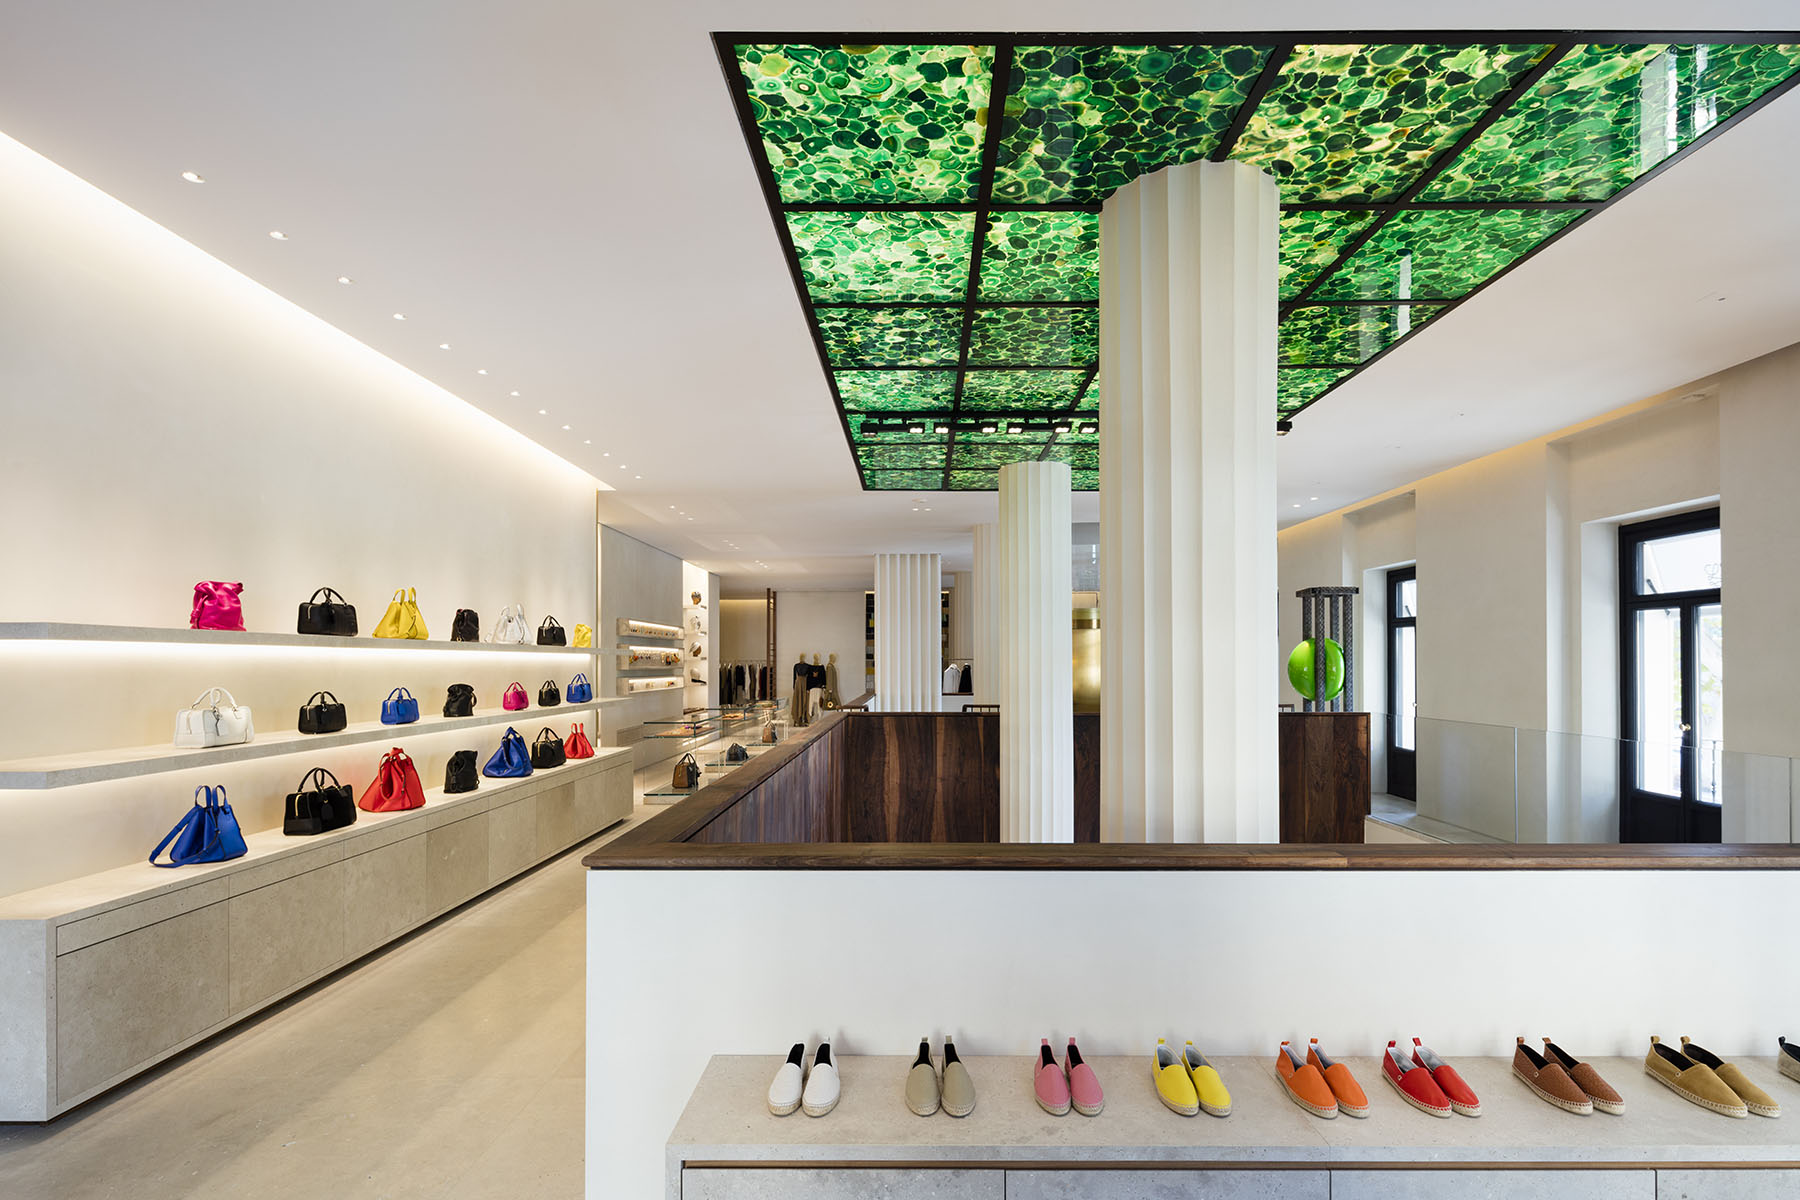 loewe-madrid-store-interior-the-impression-05